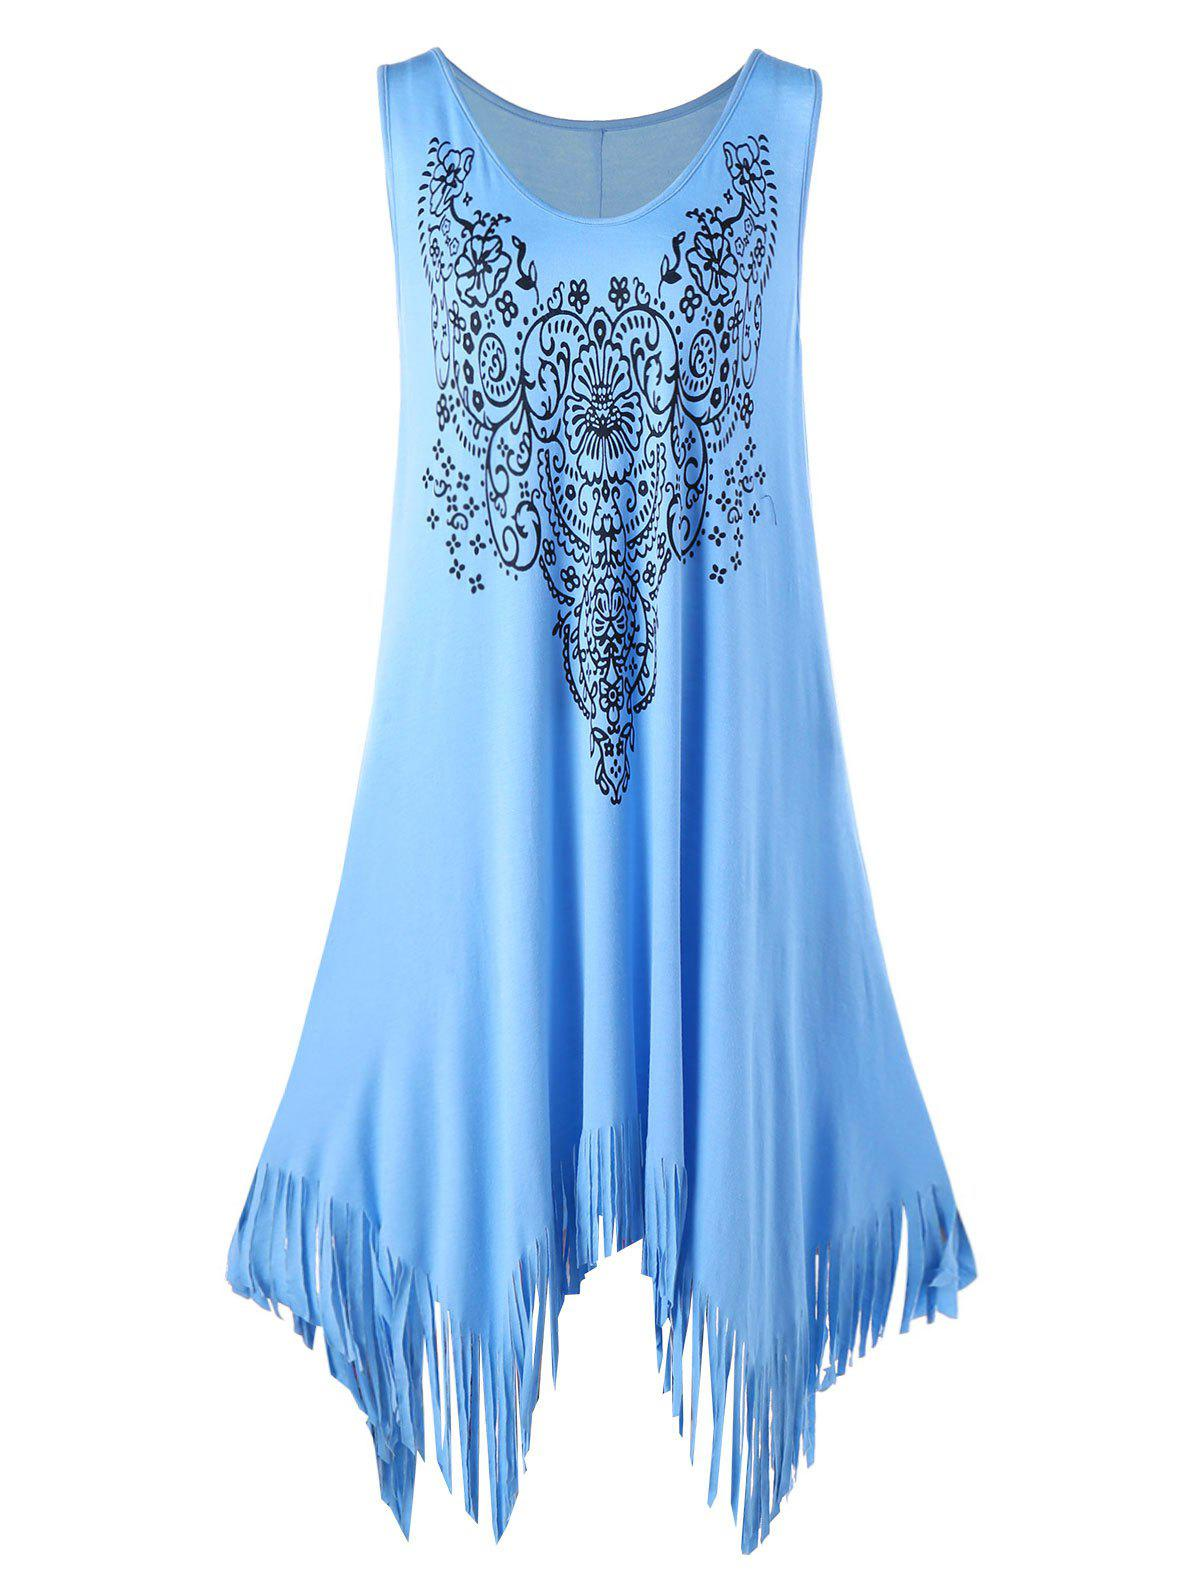 Plus Size Floral Fringed Handkerchief Flowy DressWOMEN<br><br>Size: 3XL; Color: BLUE; Style: Casual; Material: Rayon,Spandex; Silhouette: Asymmetrical; Dresses Length: Knee-Length; Neckline: Round Collar; Sleeve Length: Sleeveless; Pattern Type: Floral; With Belt: No; Season: Fall,Spring,Summer; Weight: 0.3500kg; Package Contents: 1 x Dress;